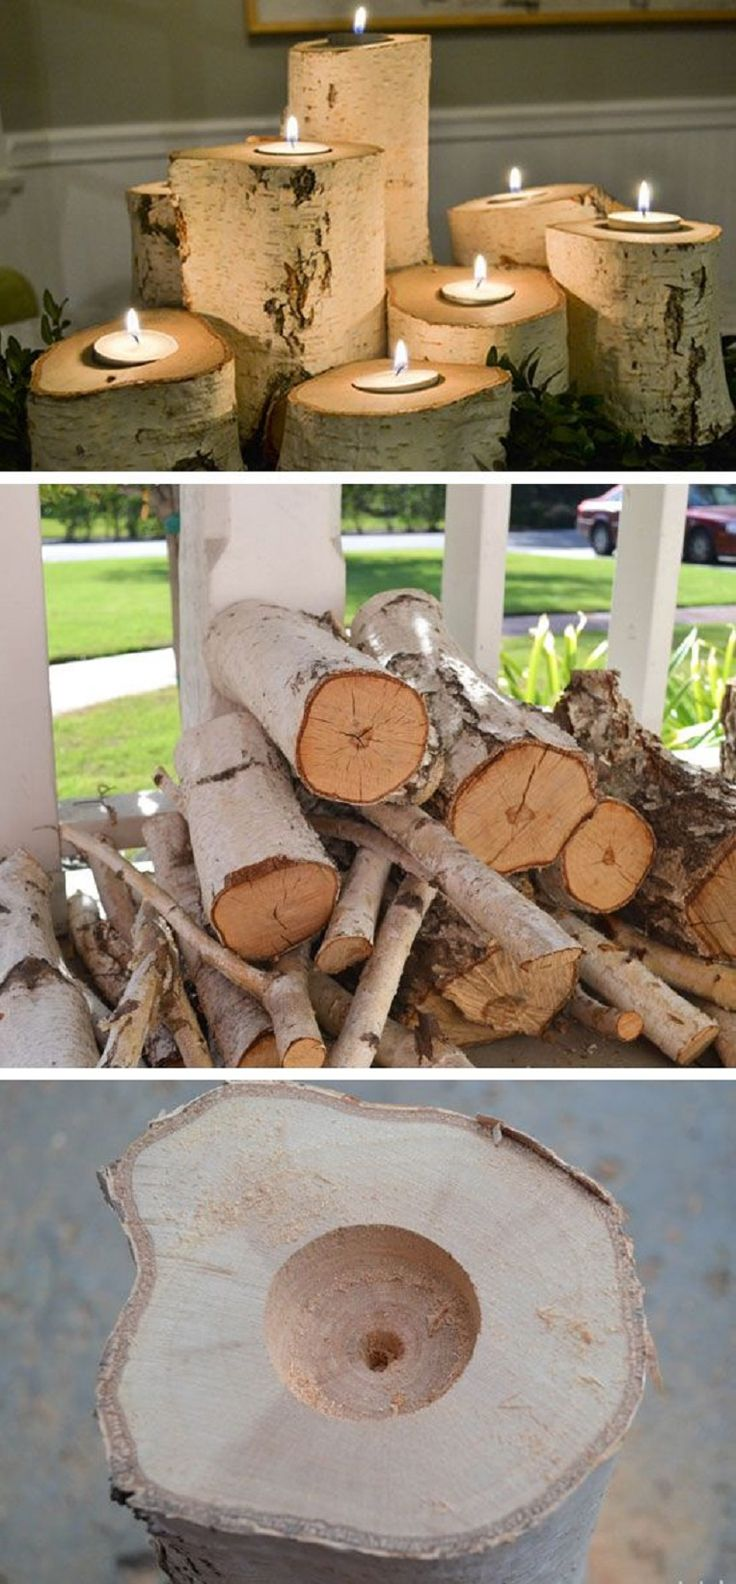 Tree stump ideas for wedding - 35 Diy Fall Decorating Ideas For The Home